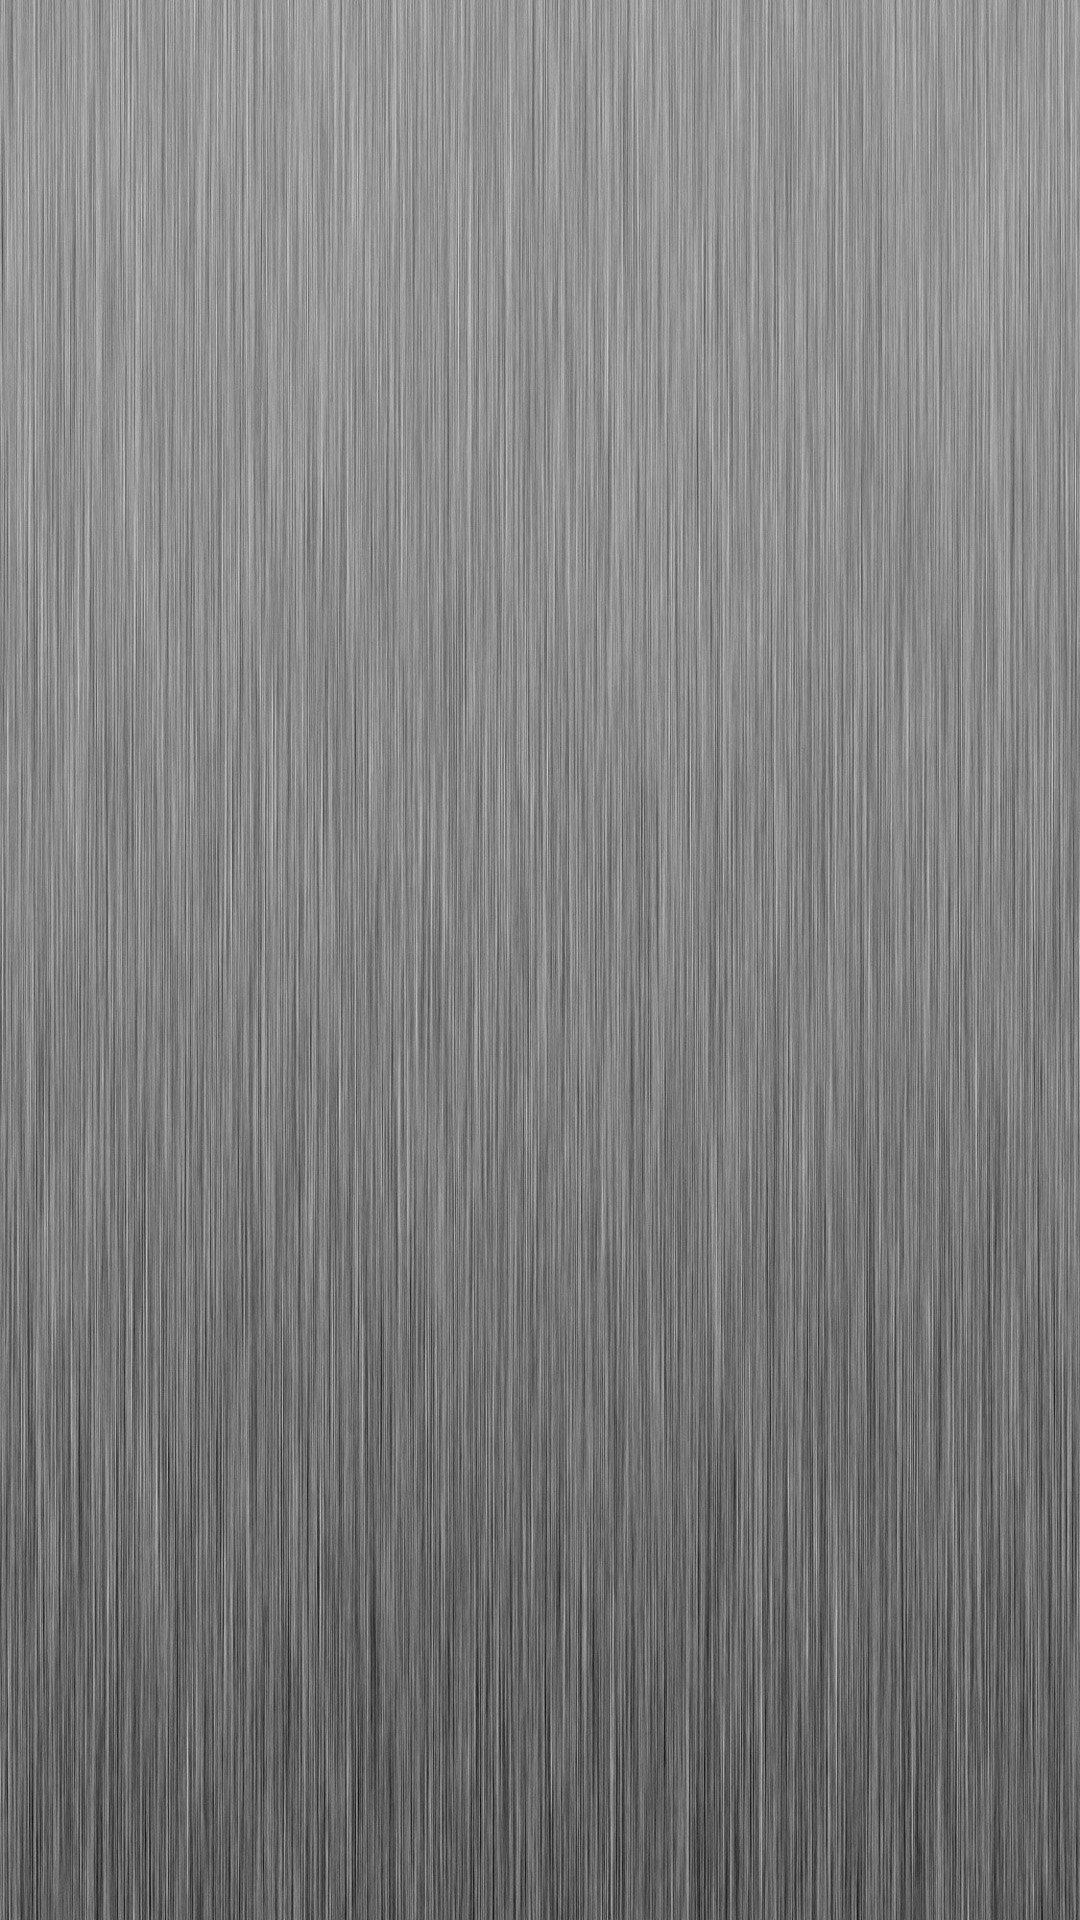 Metal texture htc wallpaper